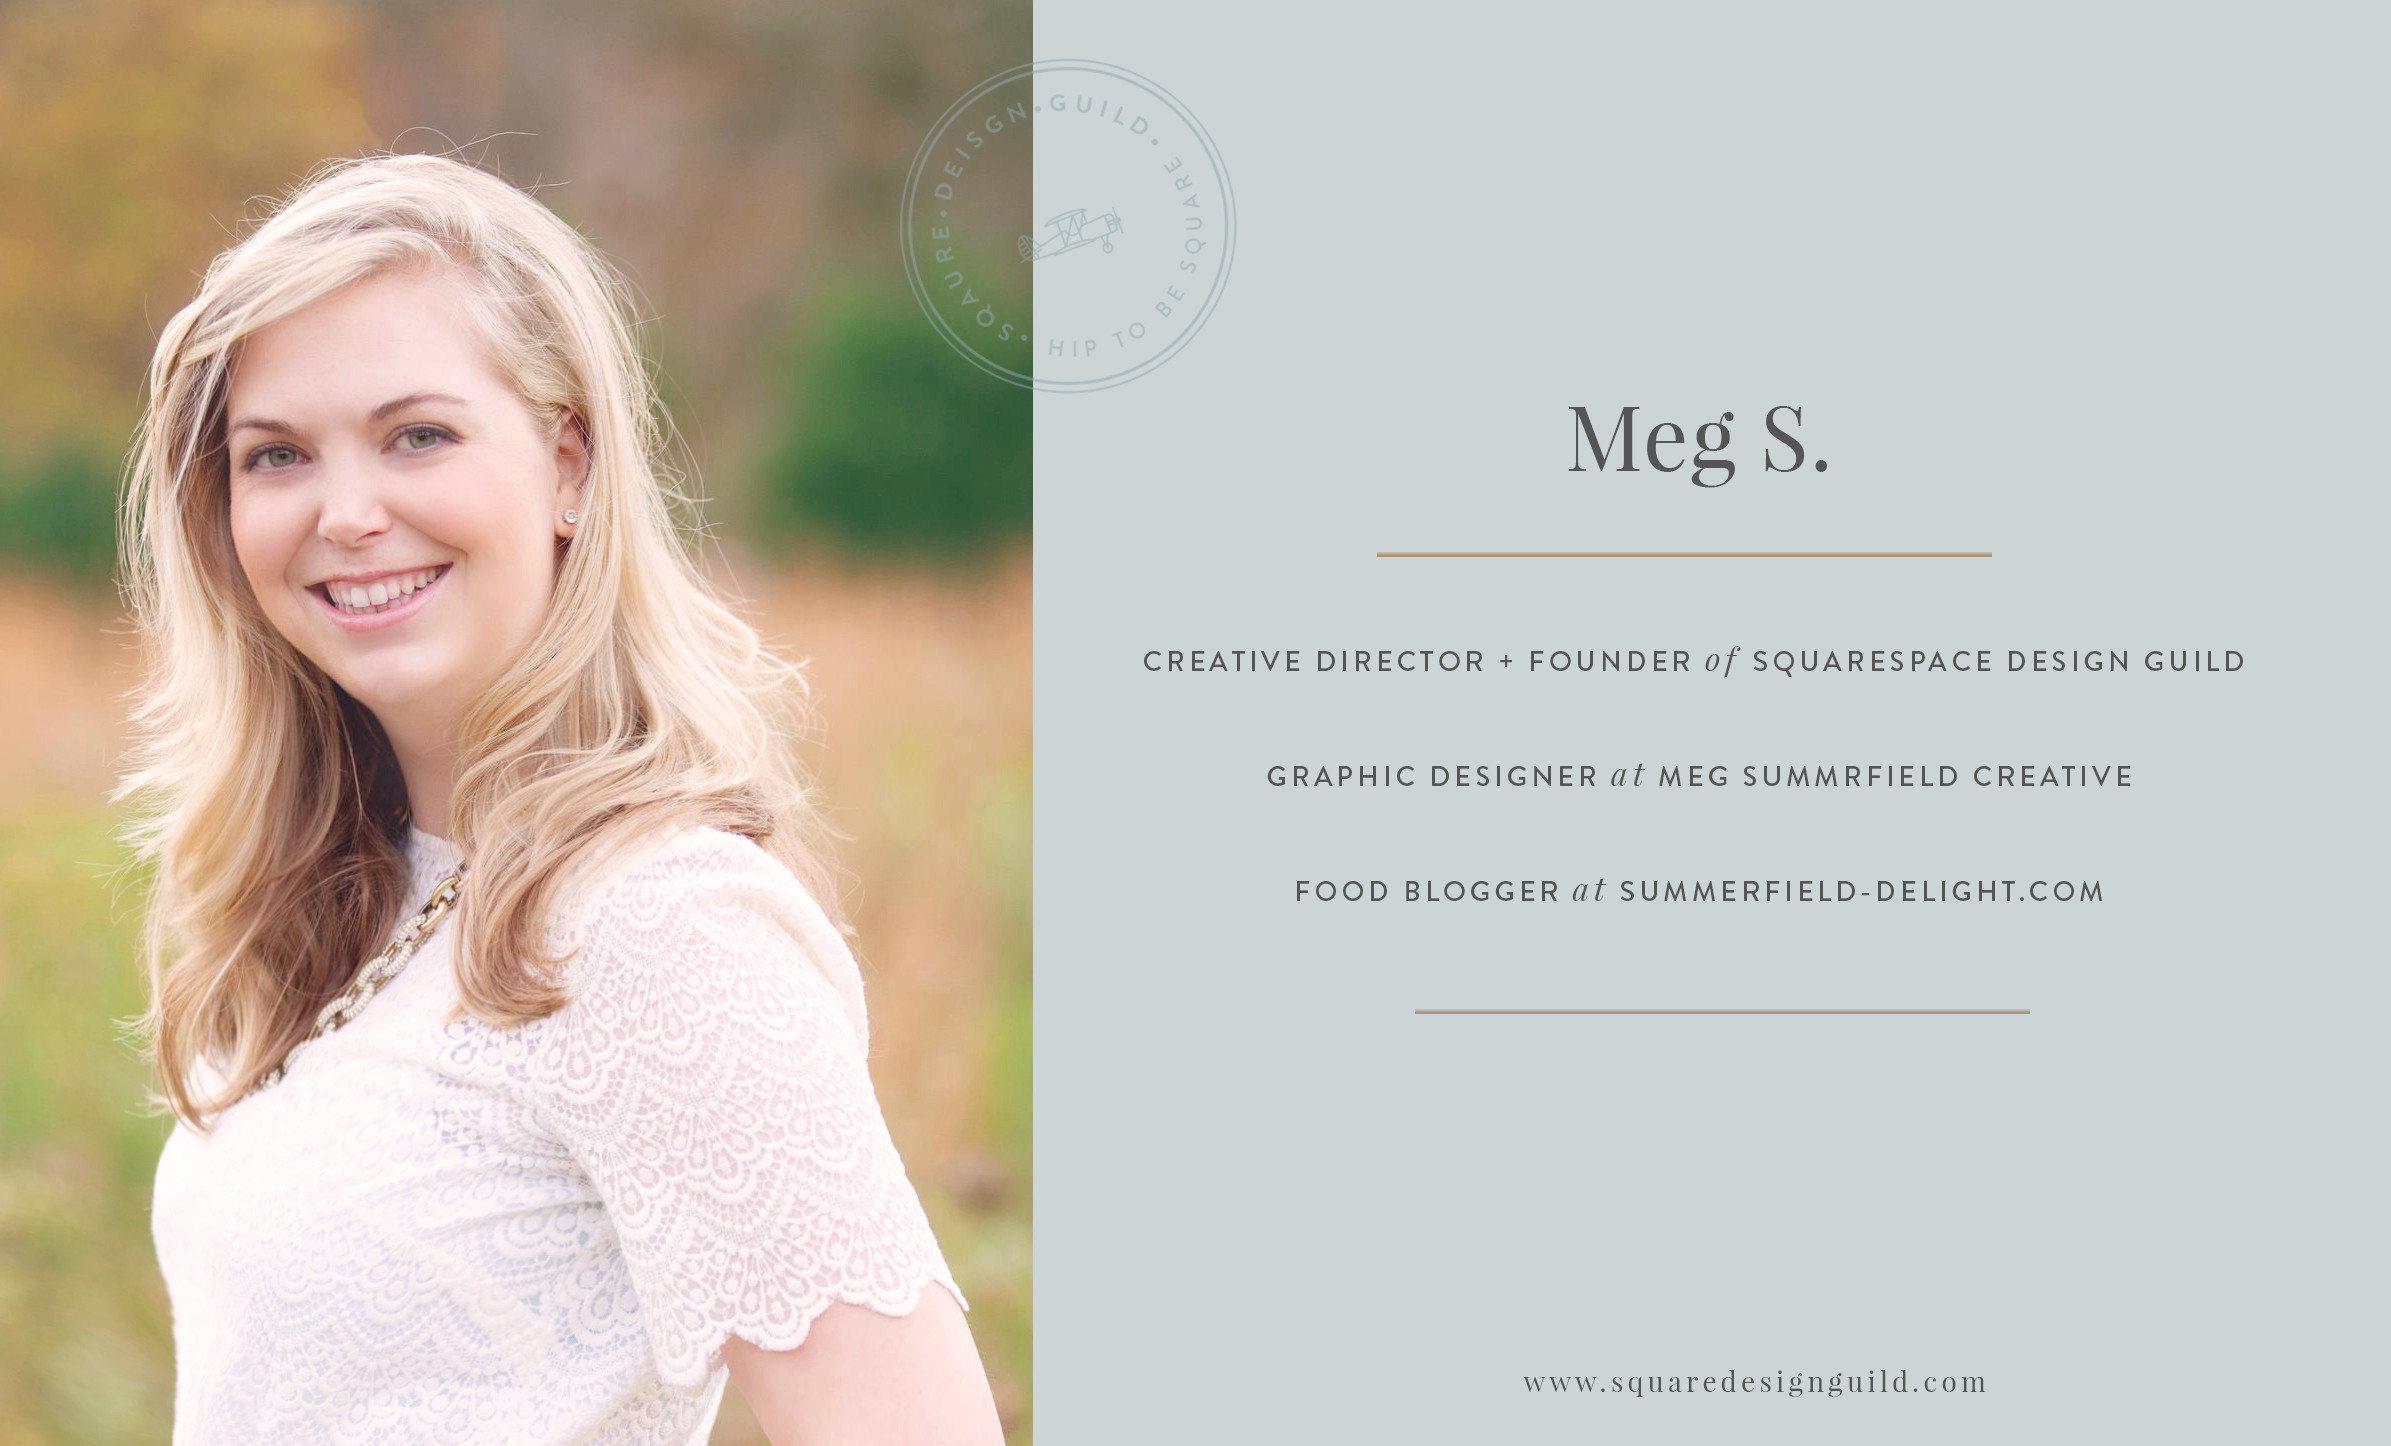 Meg S. Founder and Creative Director at Squarespace Design Guild